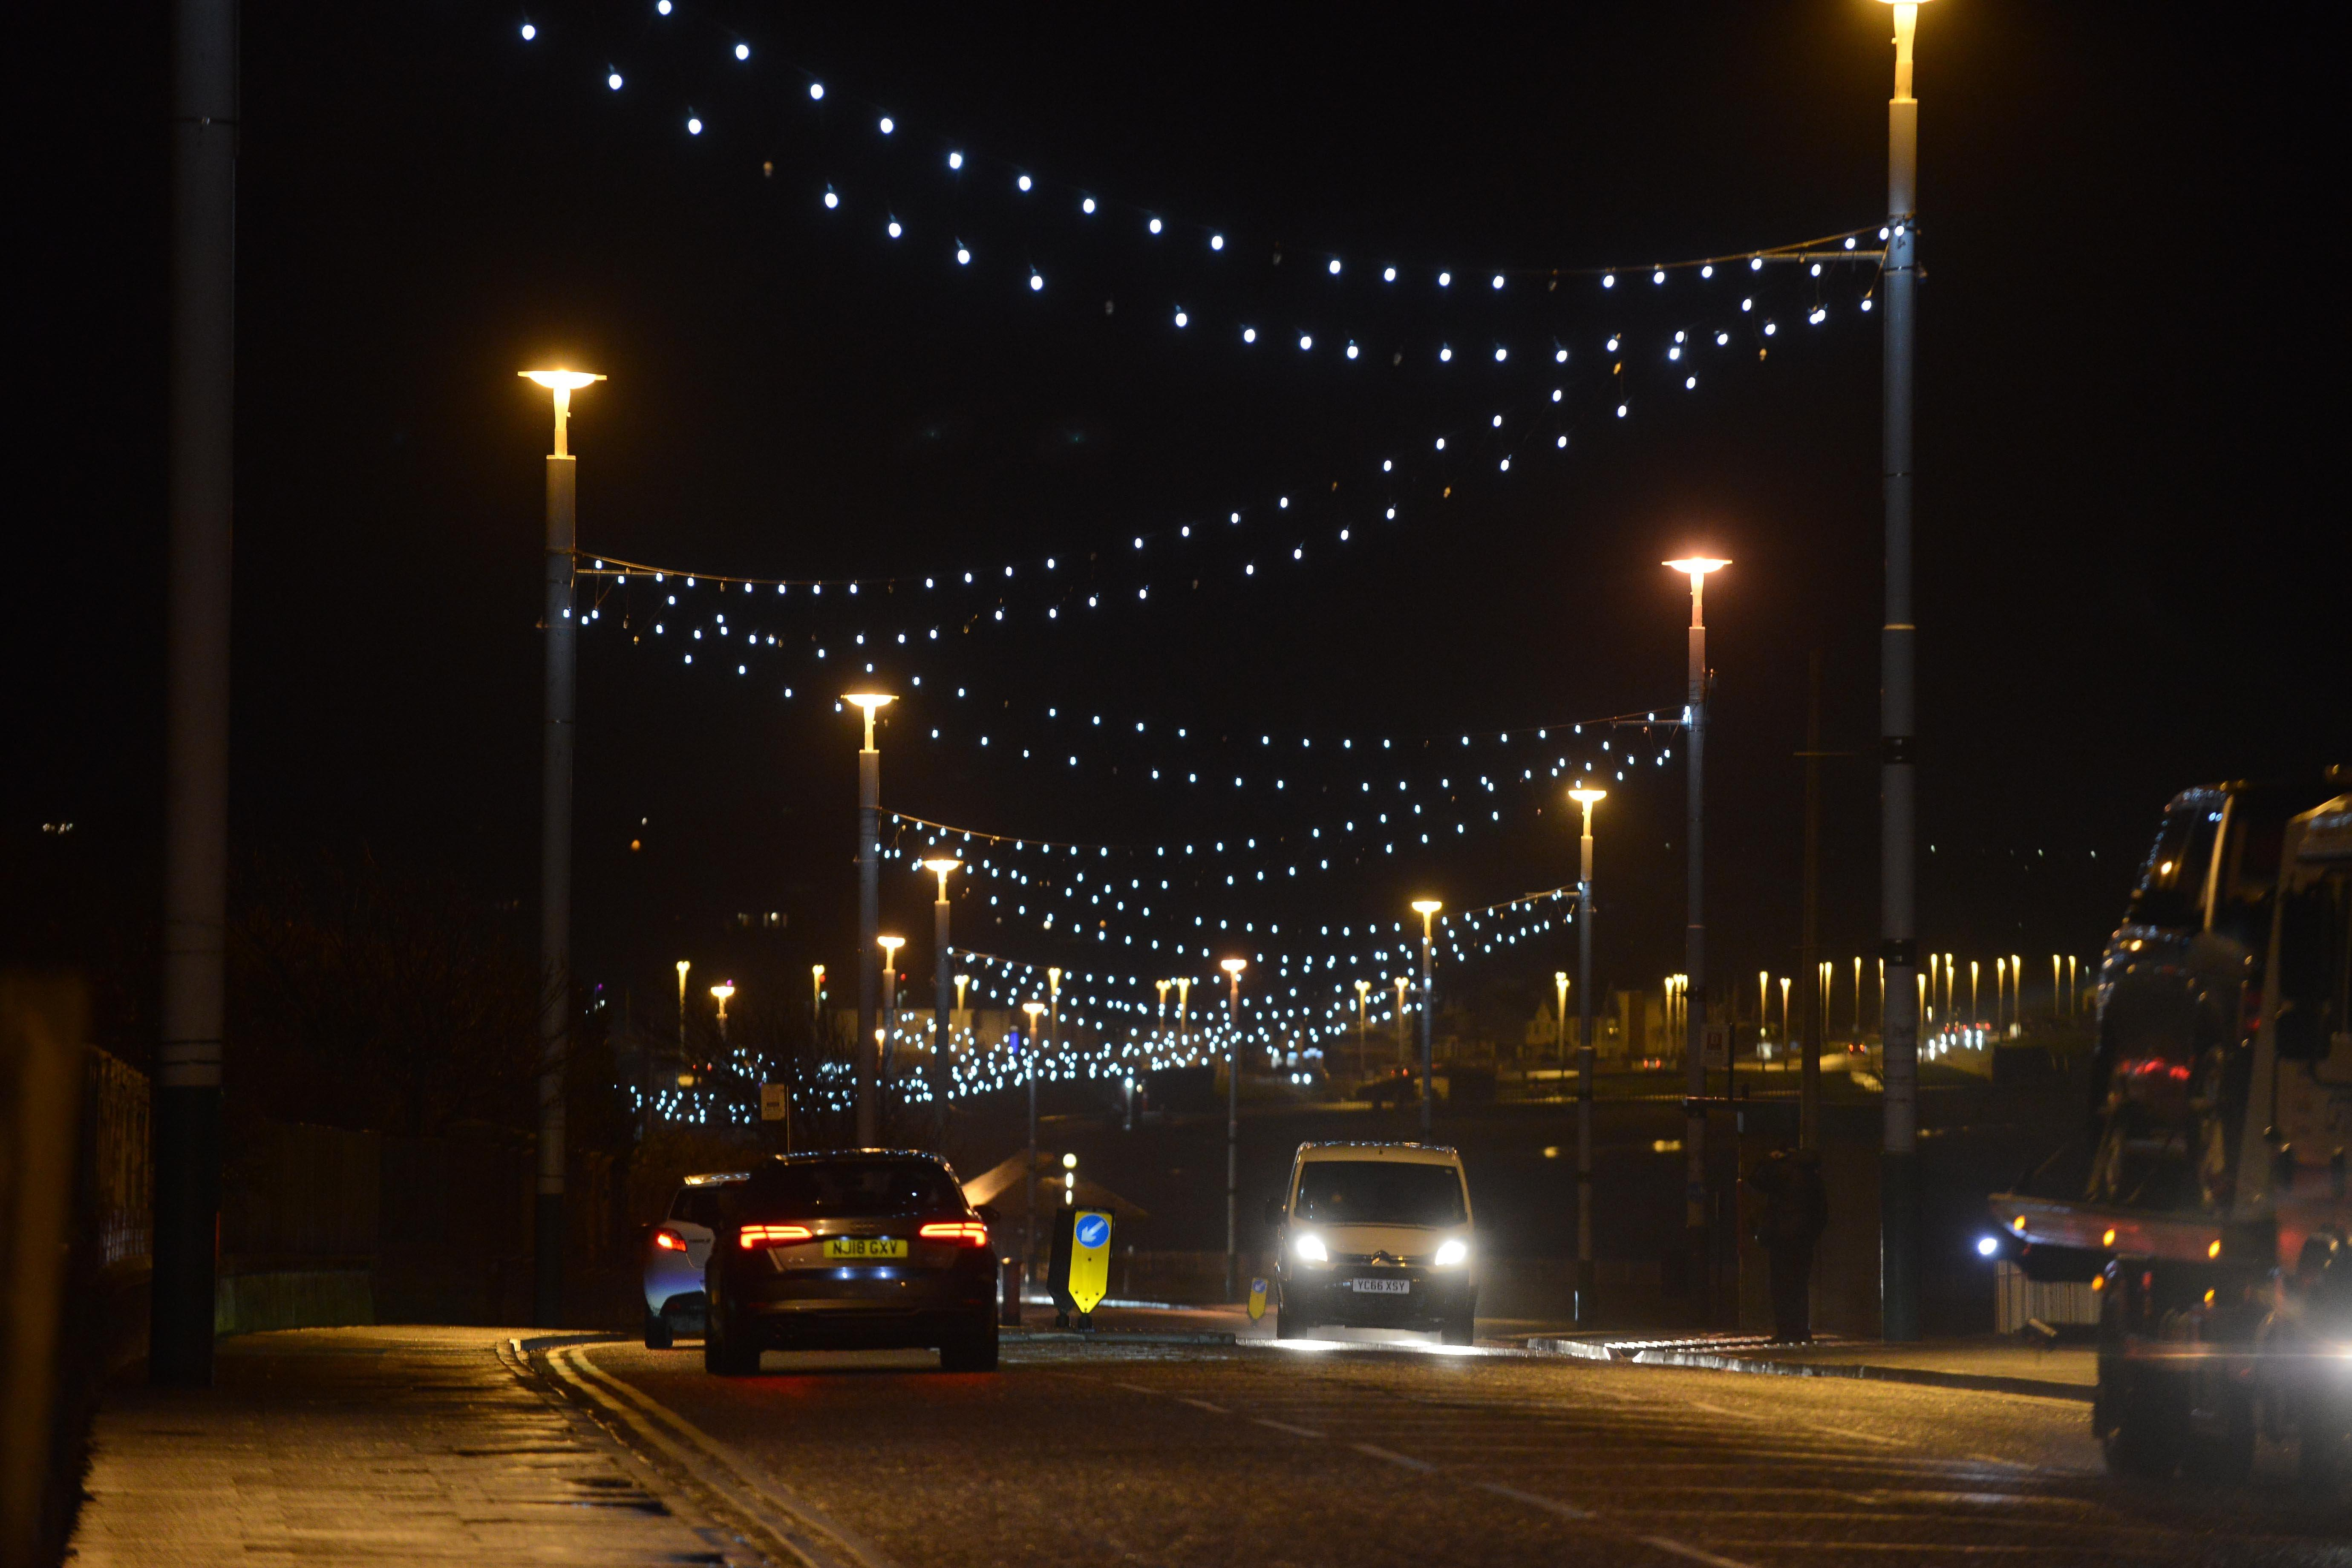 Sunderland comes alive with light as city illuminations are switched on - Sunderland Echo